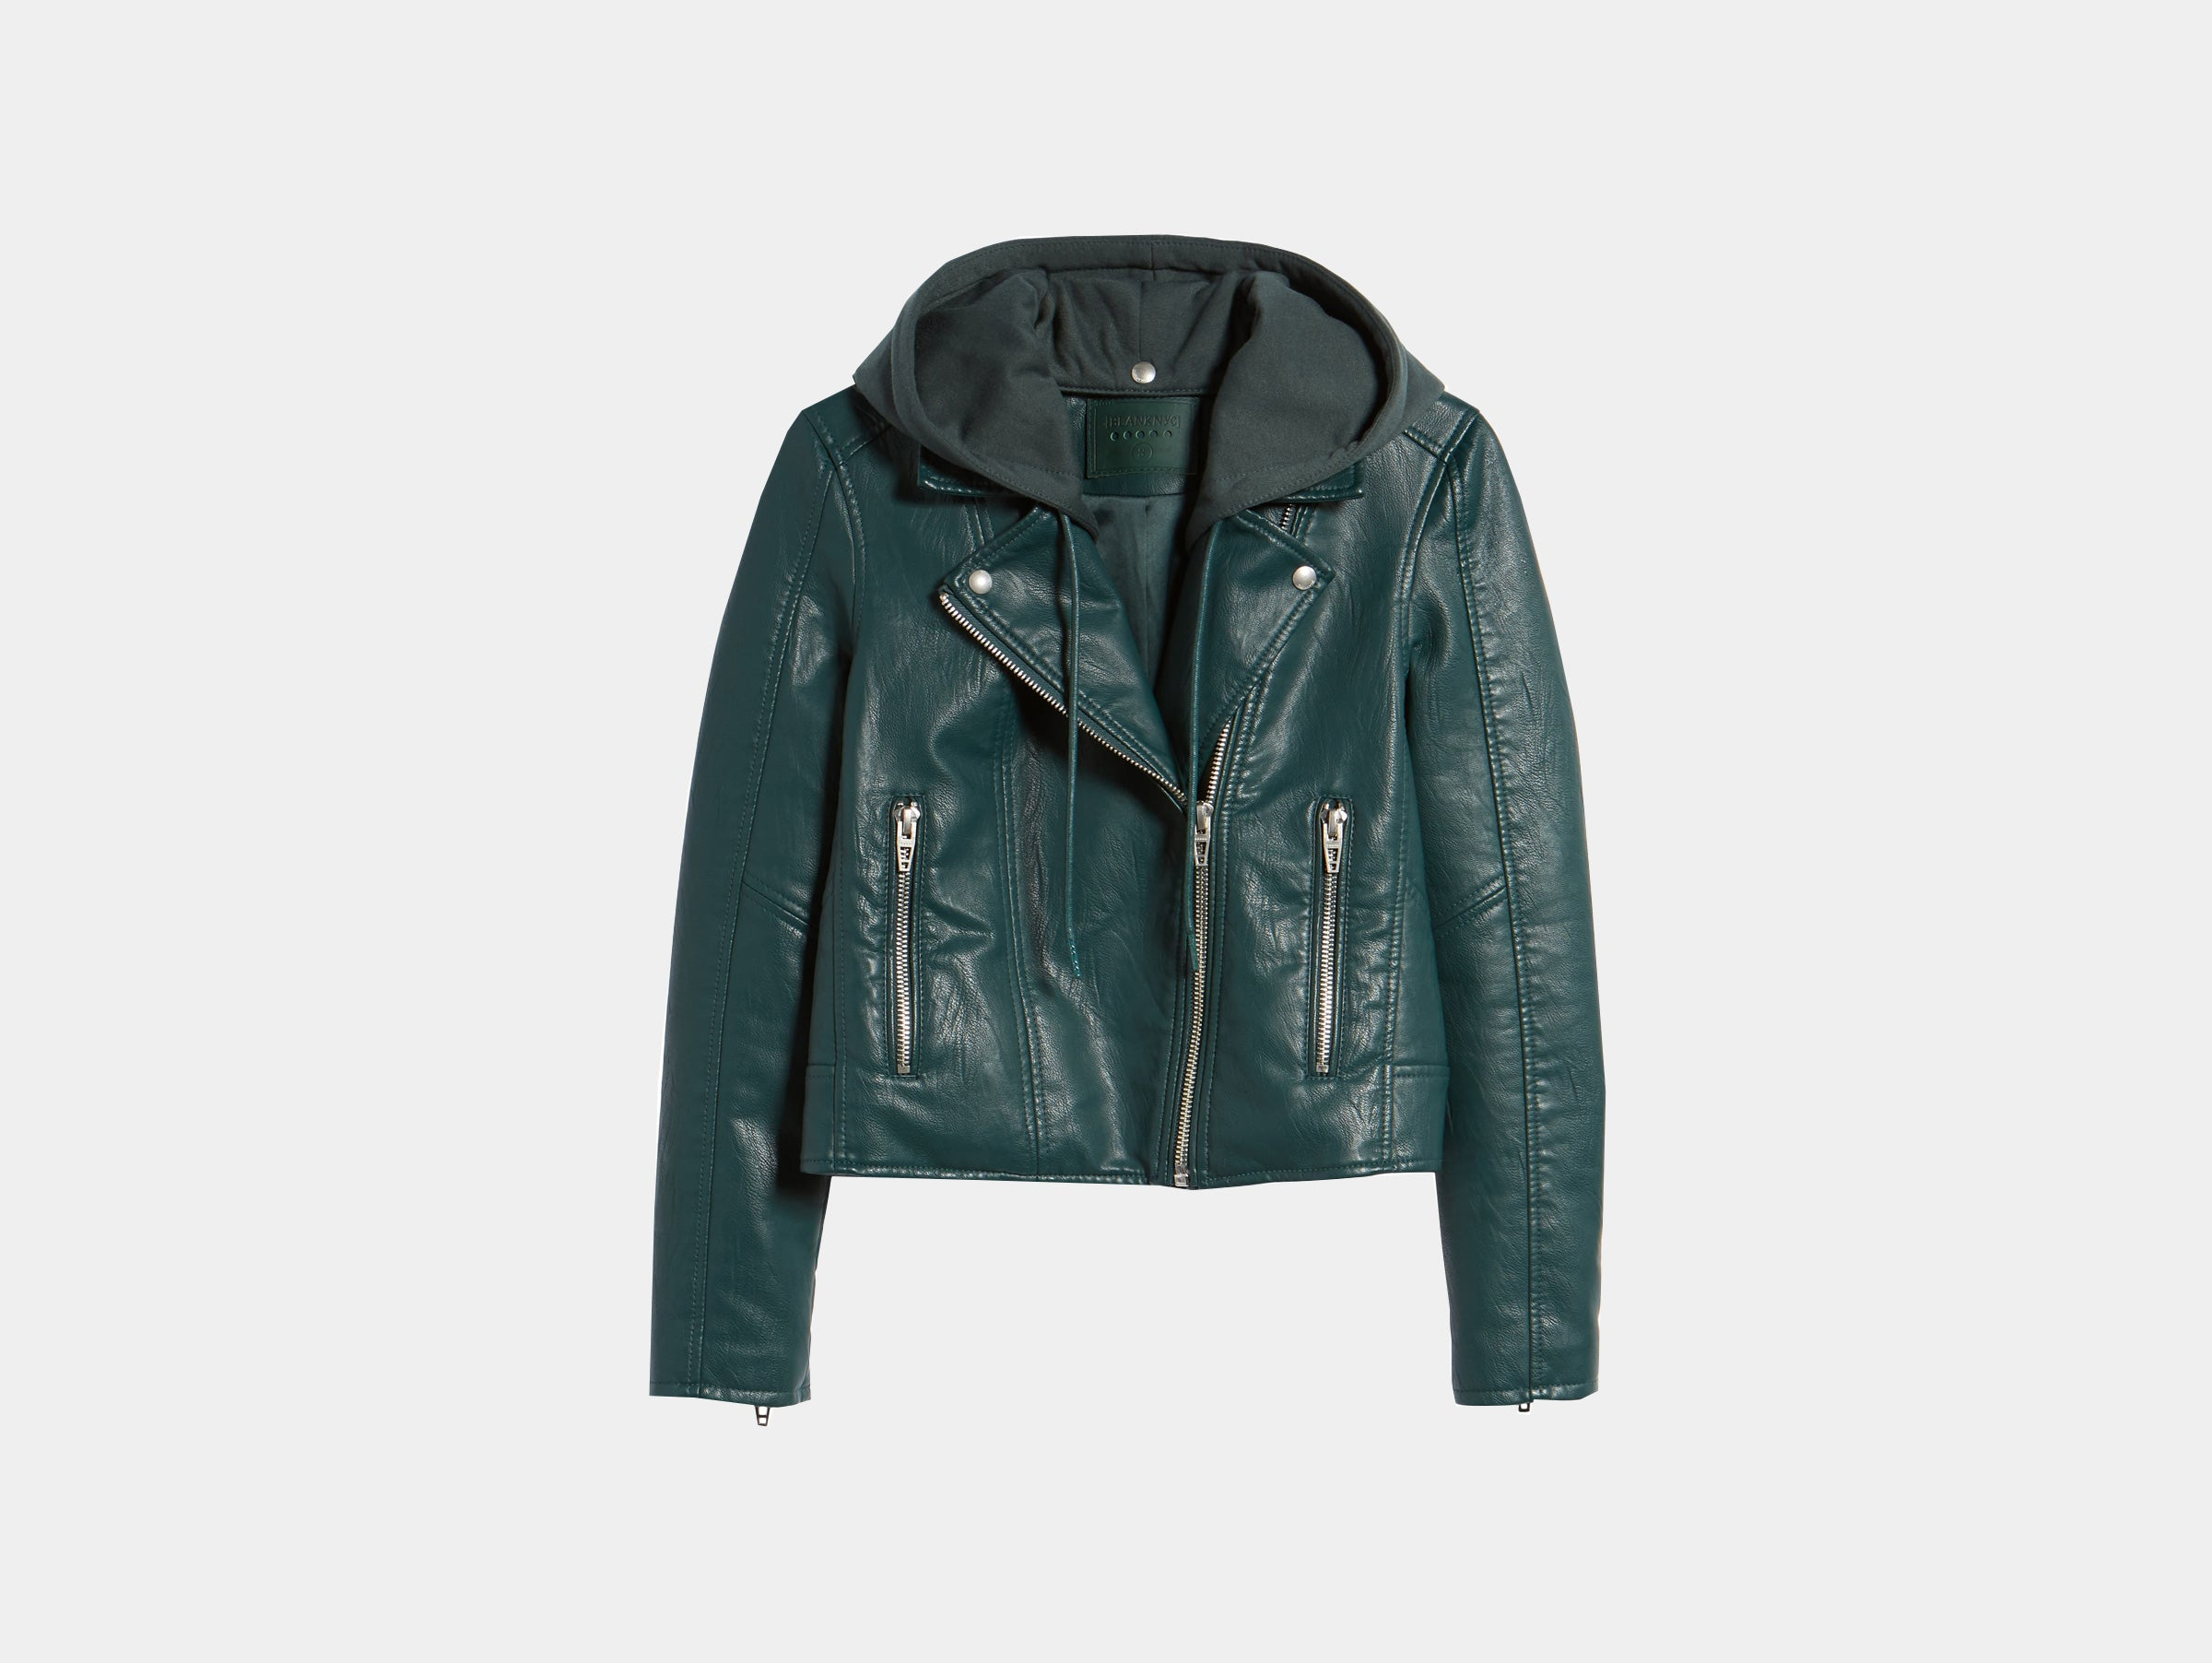 BLANKNYC vegan faux leather blue green alternative biker jacket